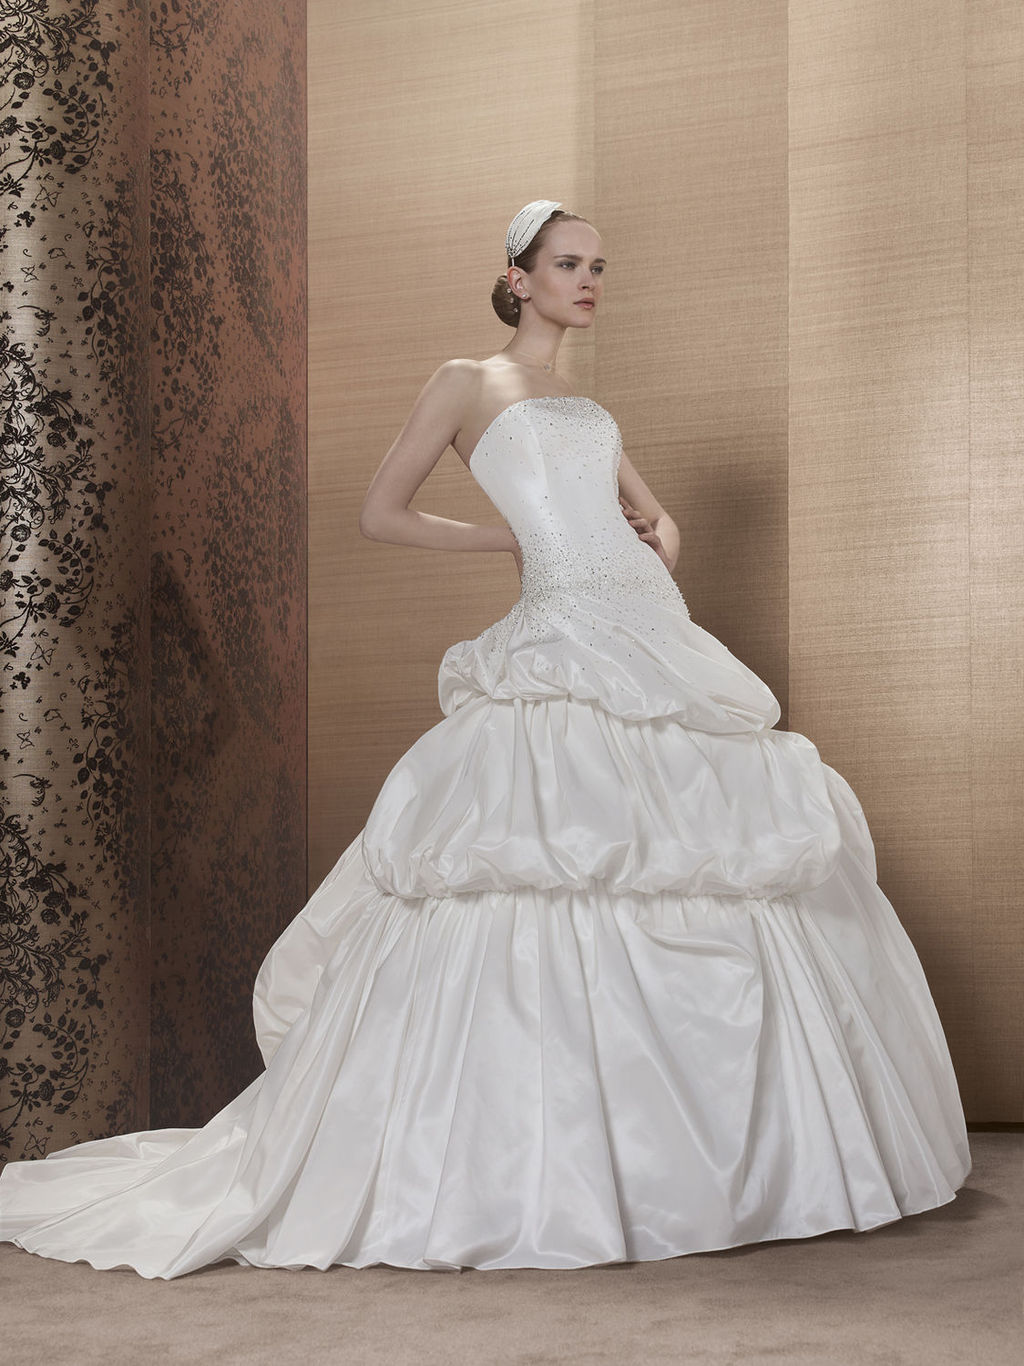 2013 Wedding Dress by Pronuptia Paris kh83